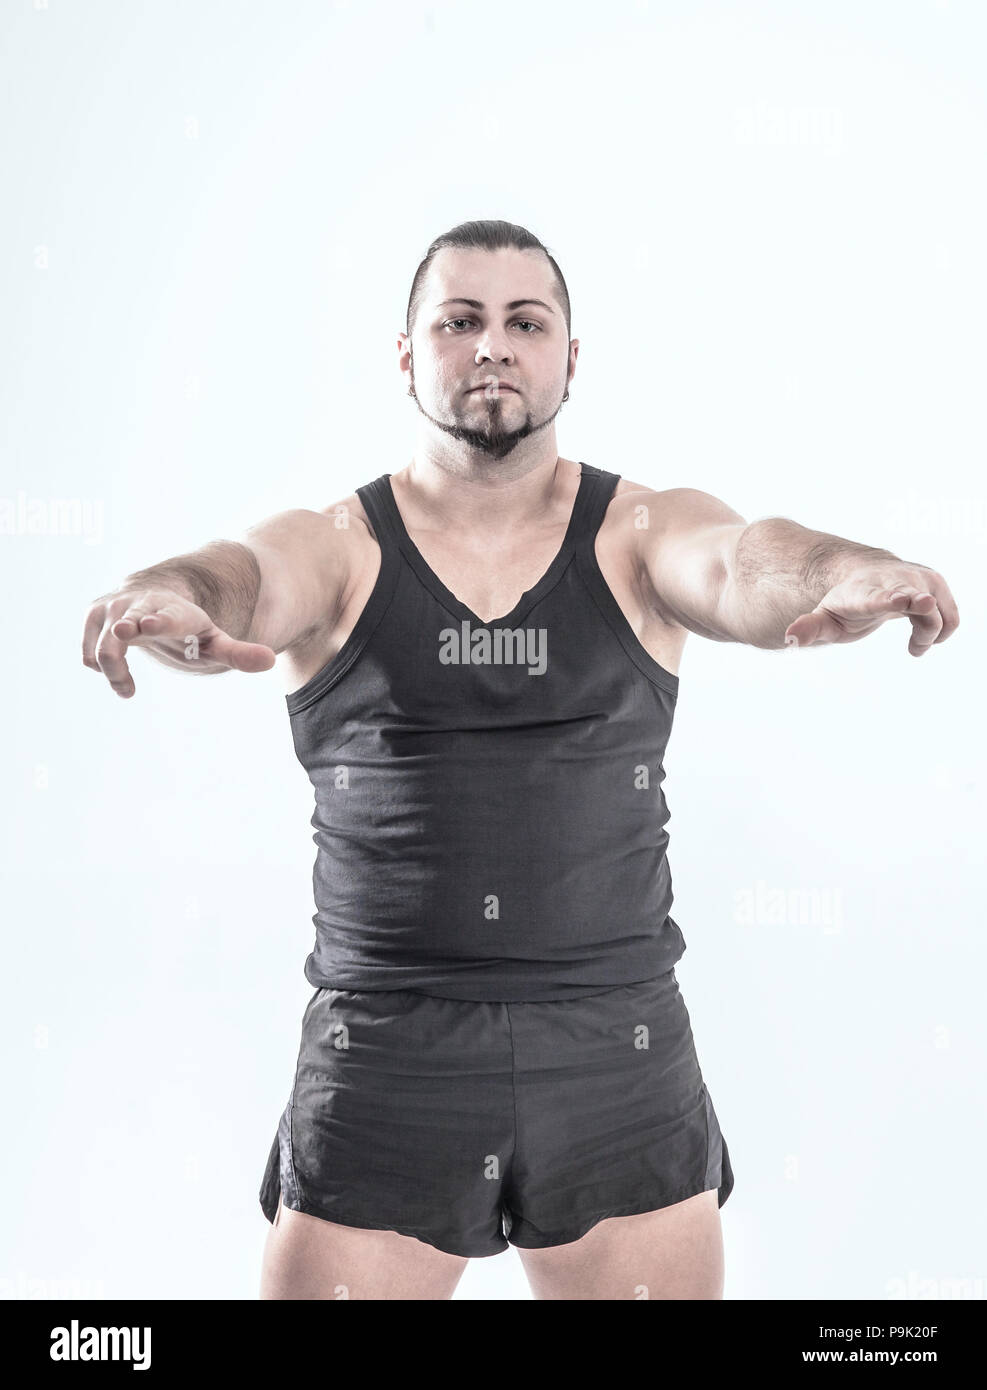 portrait - the trainer on bodybuilding on a white background. - Stock Image